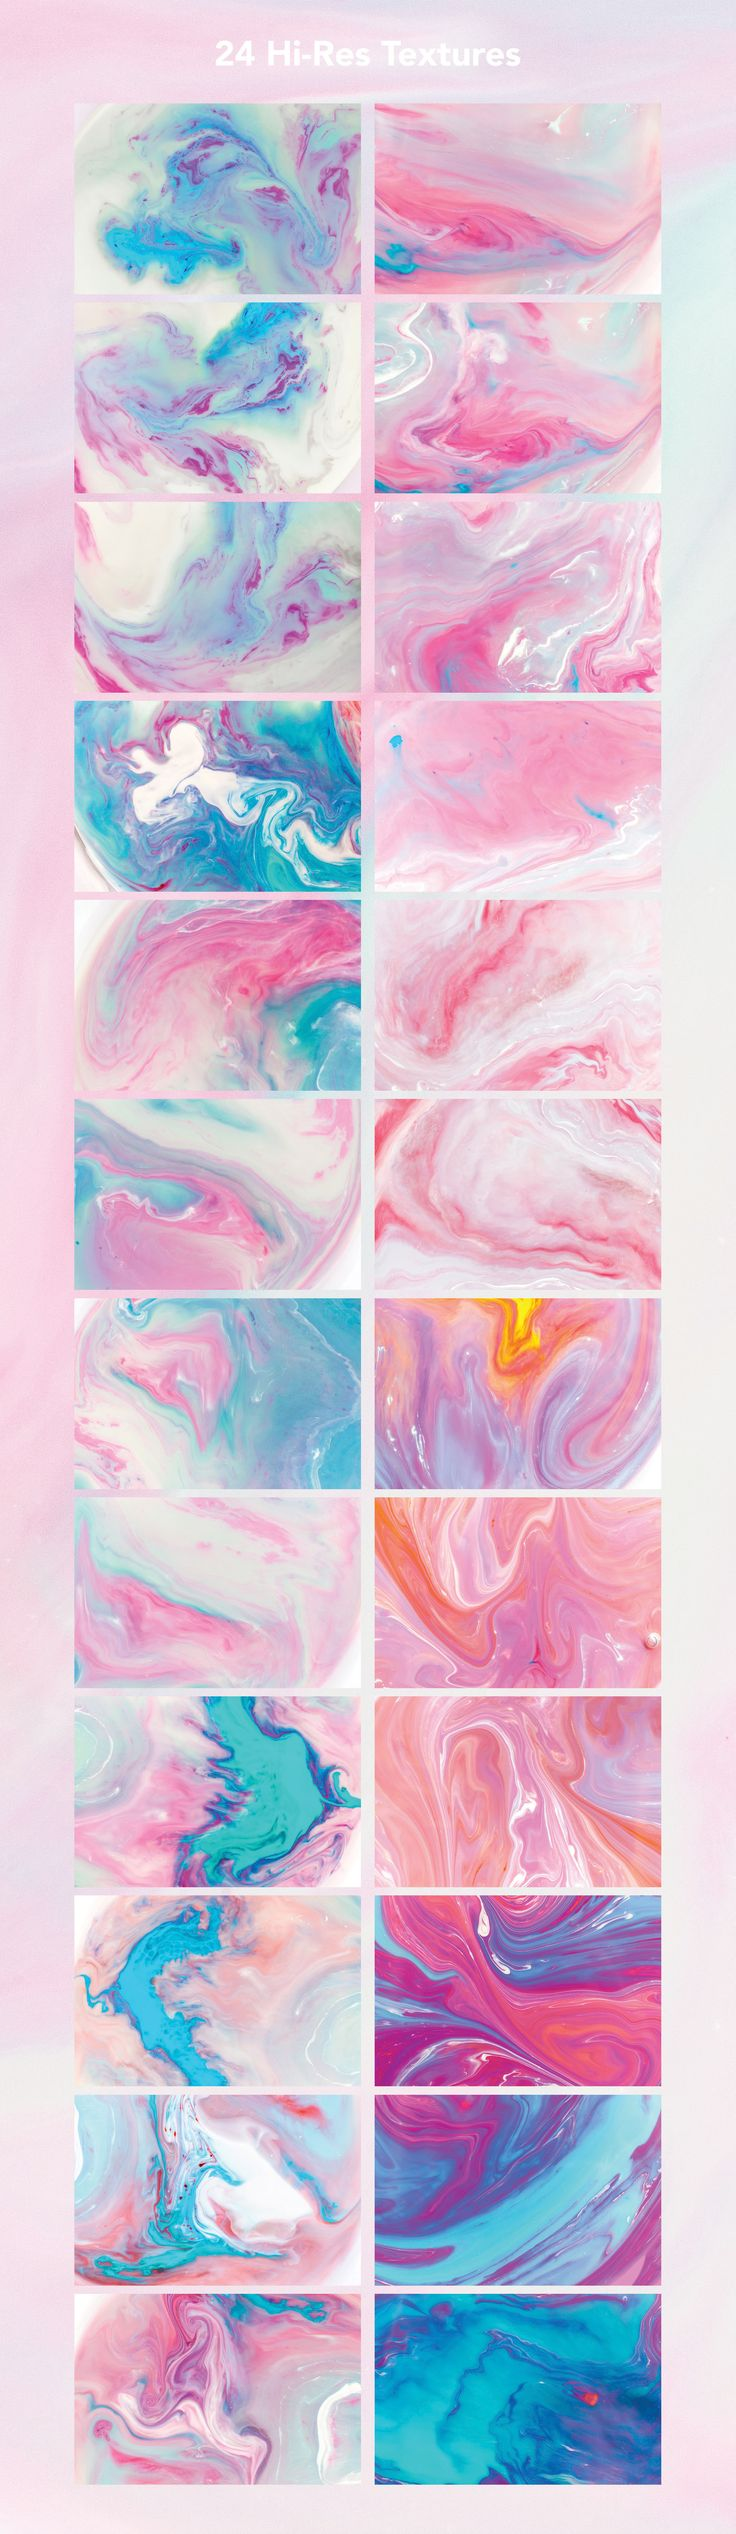 Modern Marble Ink Textures by Fox & Bear on @creativemarket